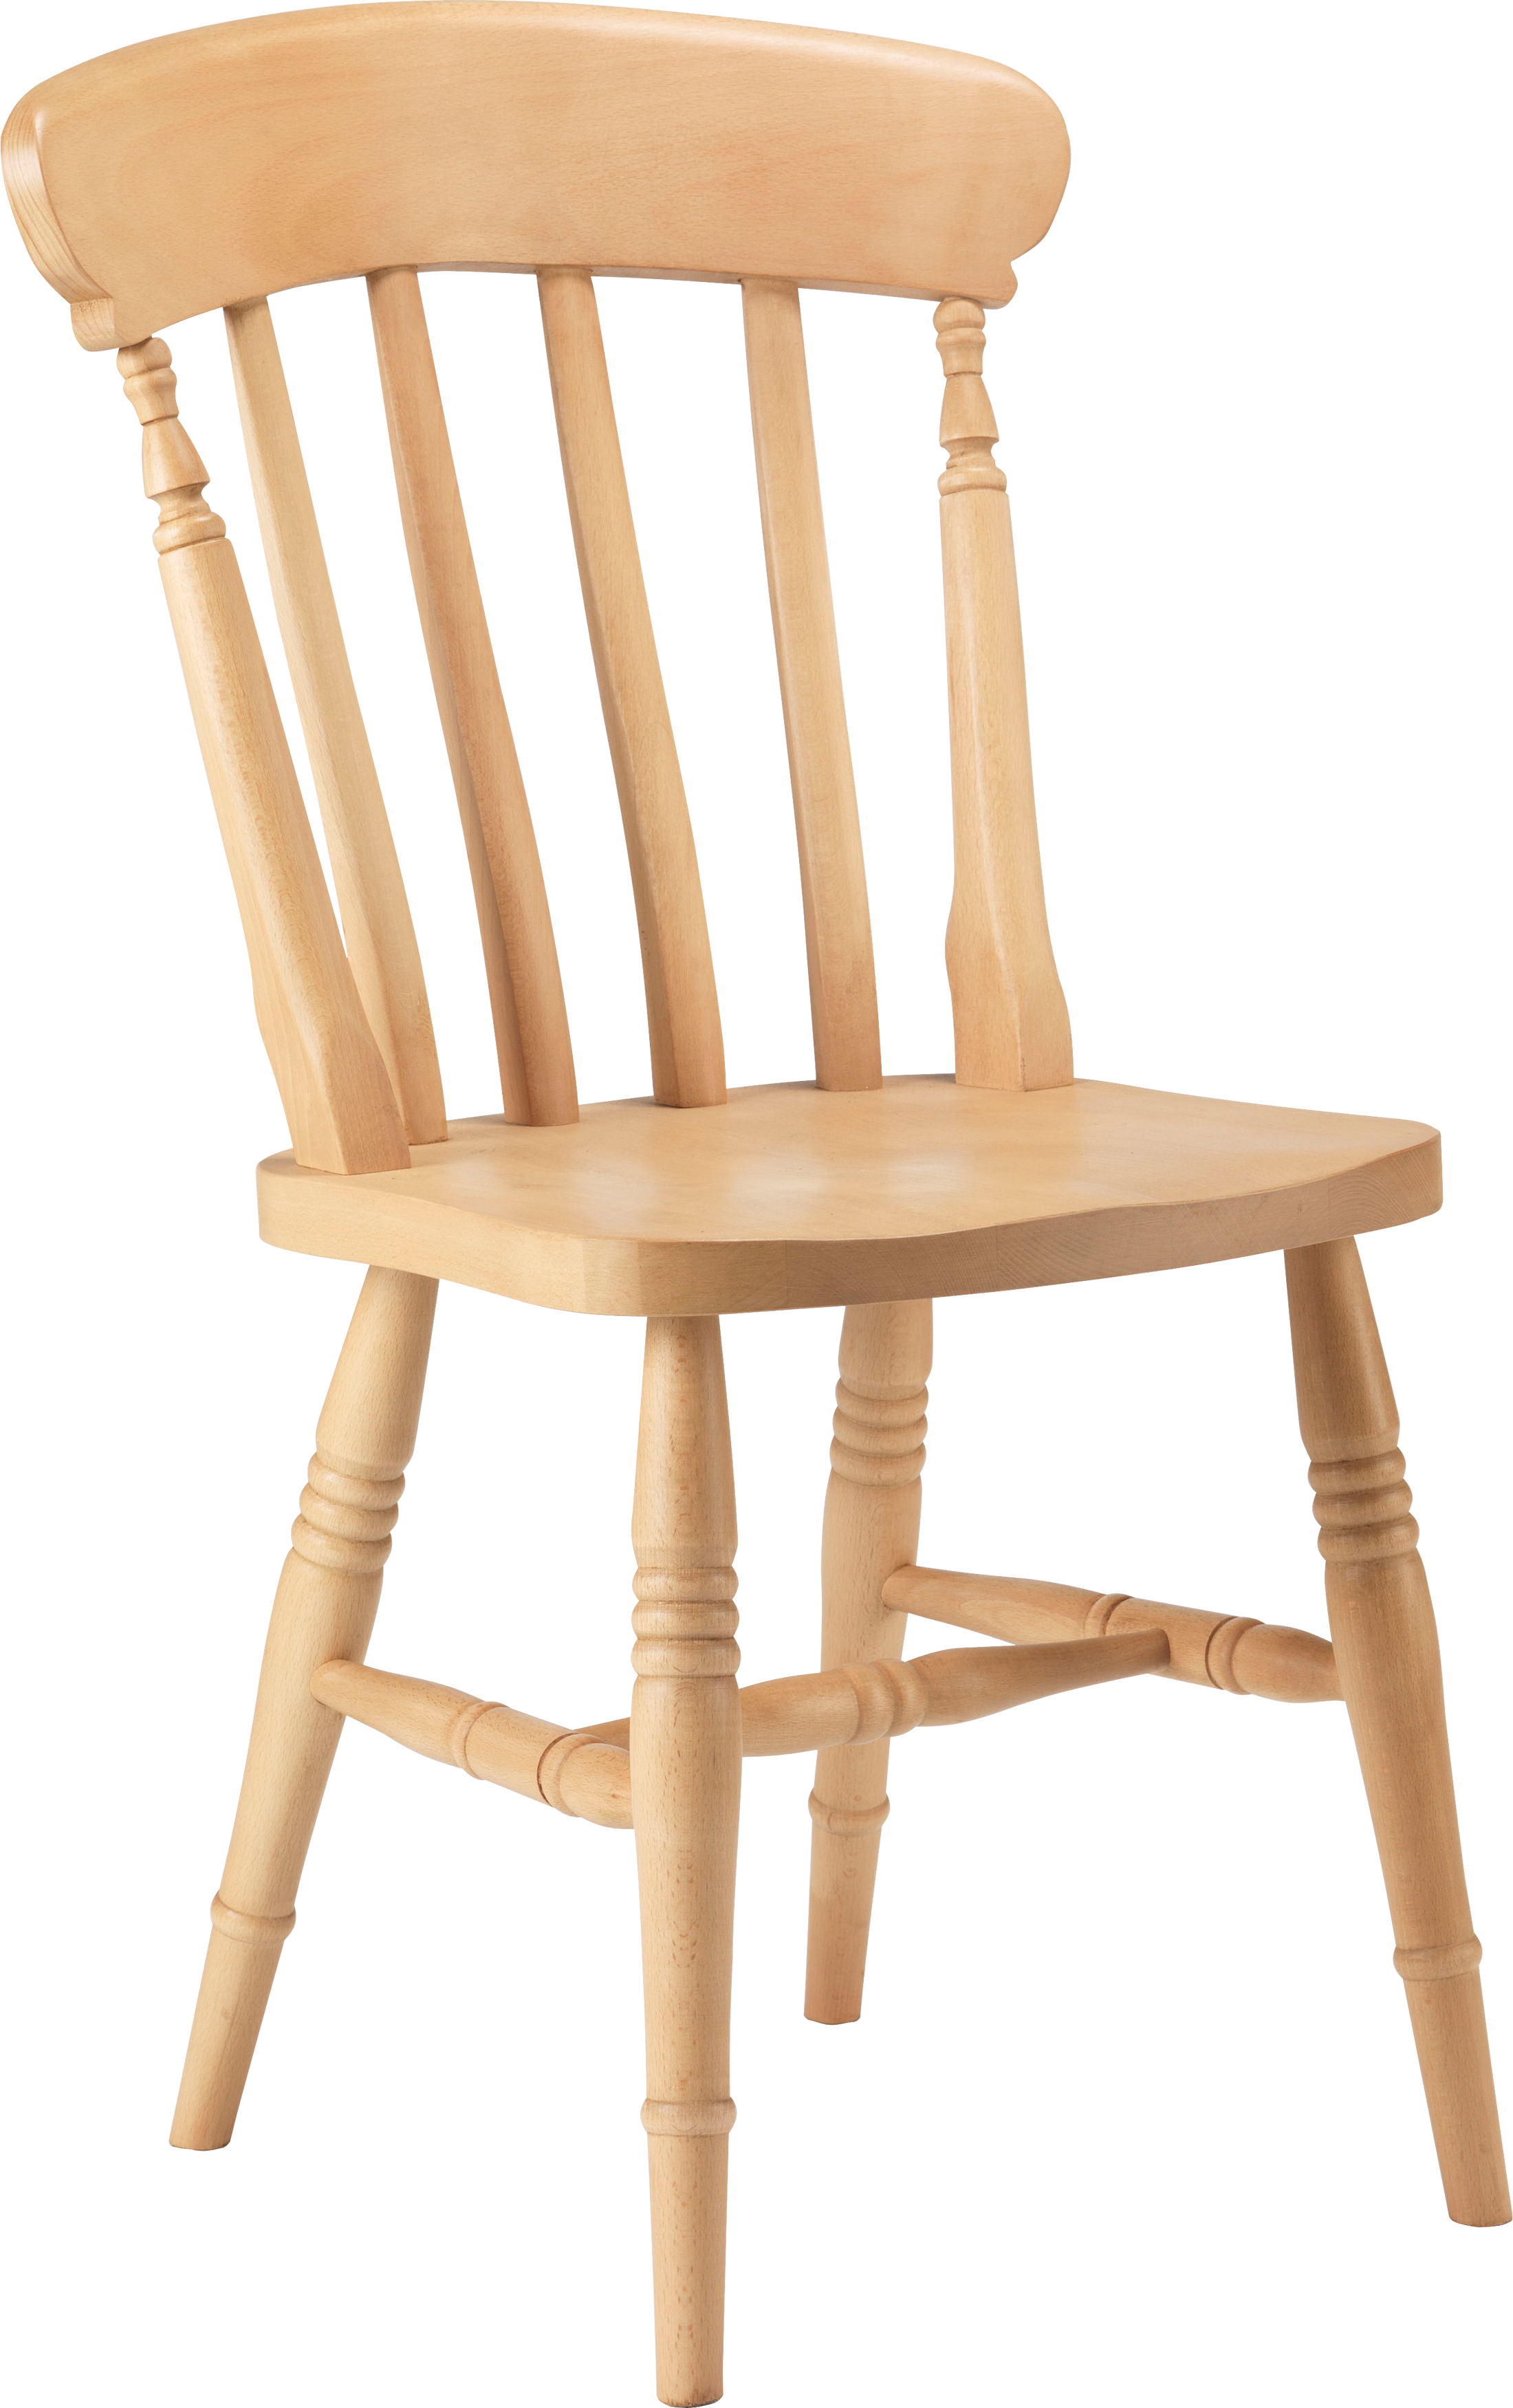 Chair Png image #40520